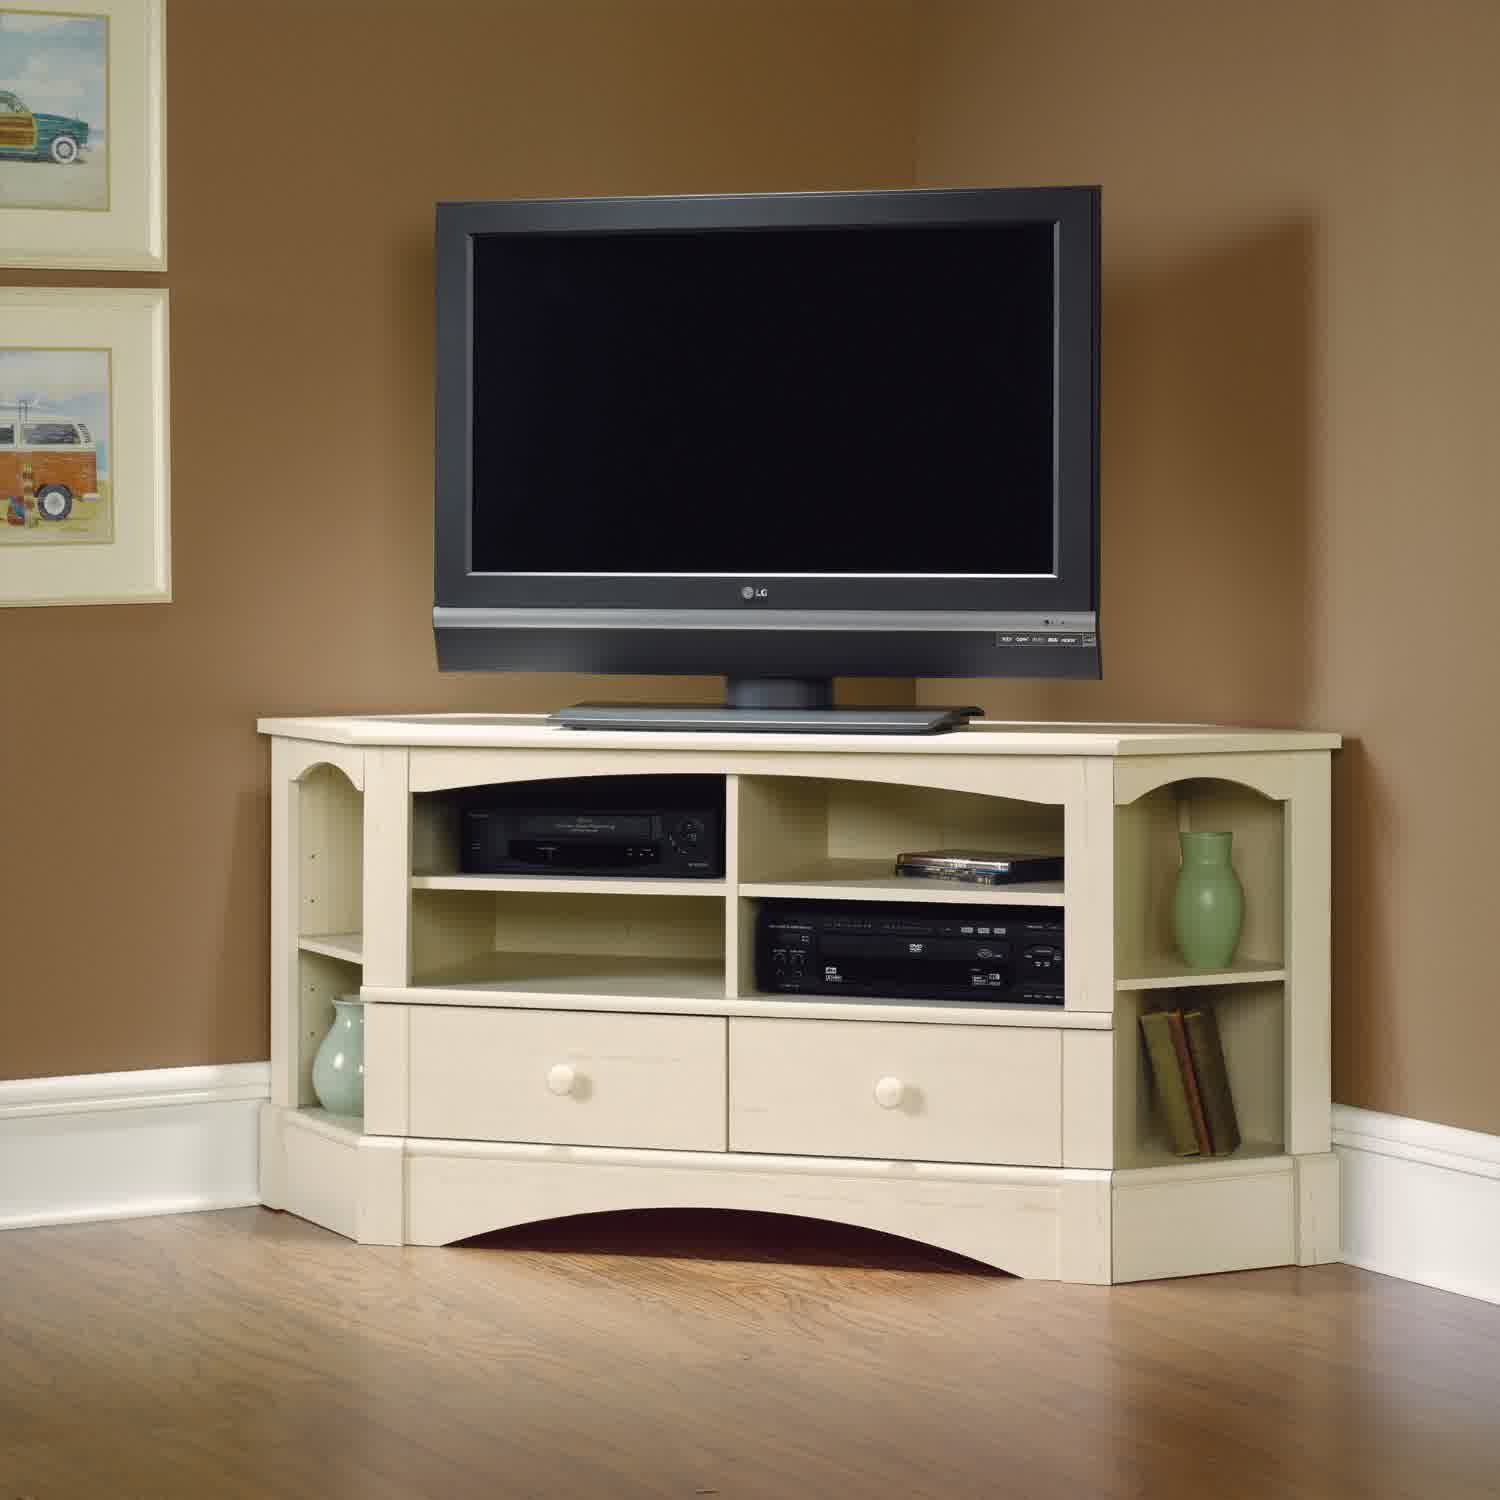 Entertainment Centers IKEA Designs and Photos